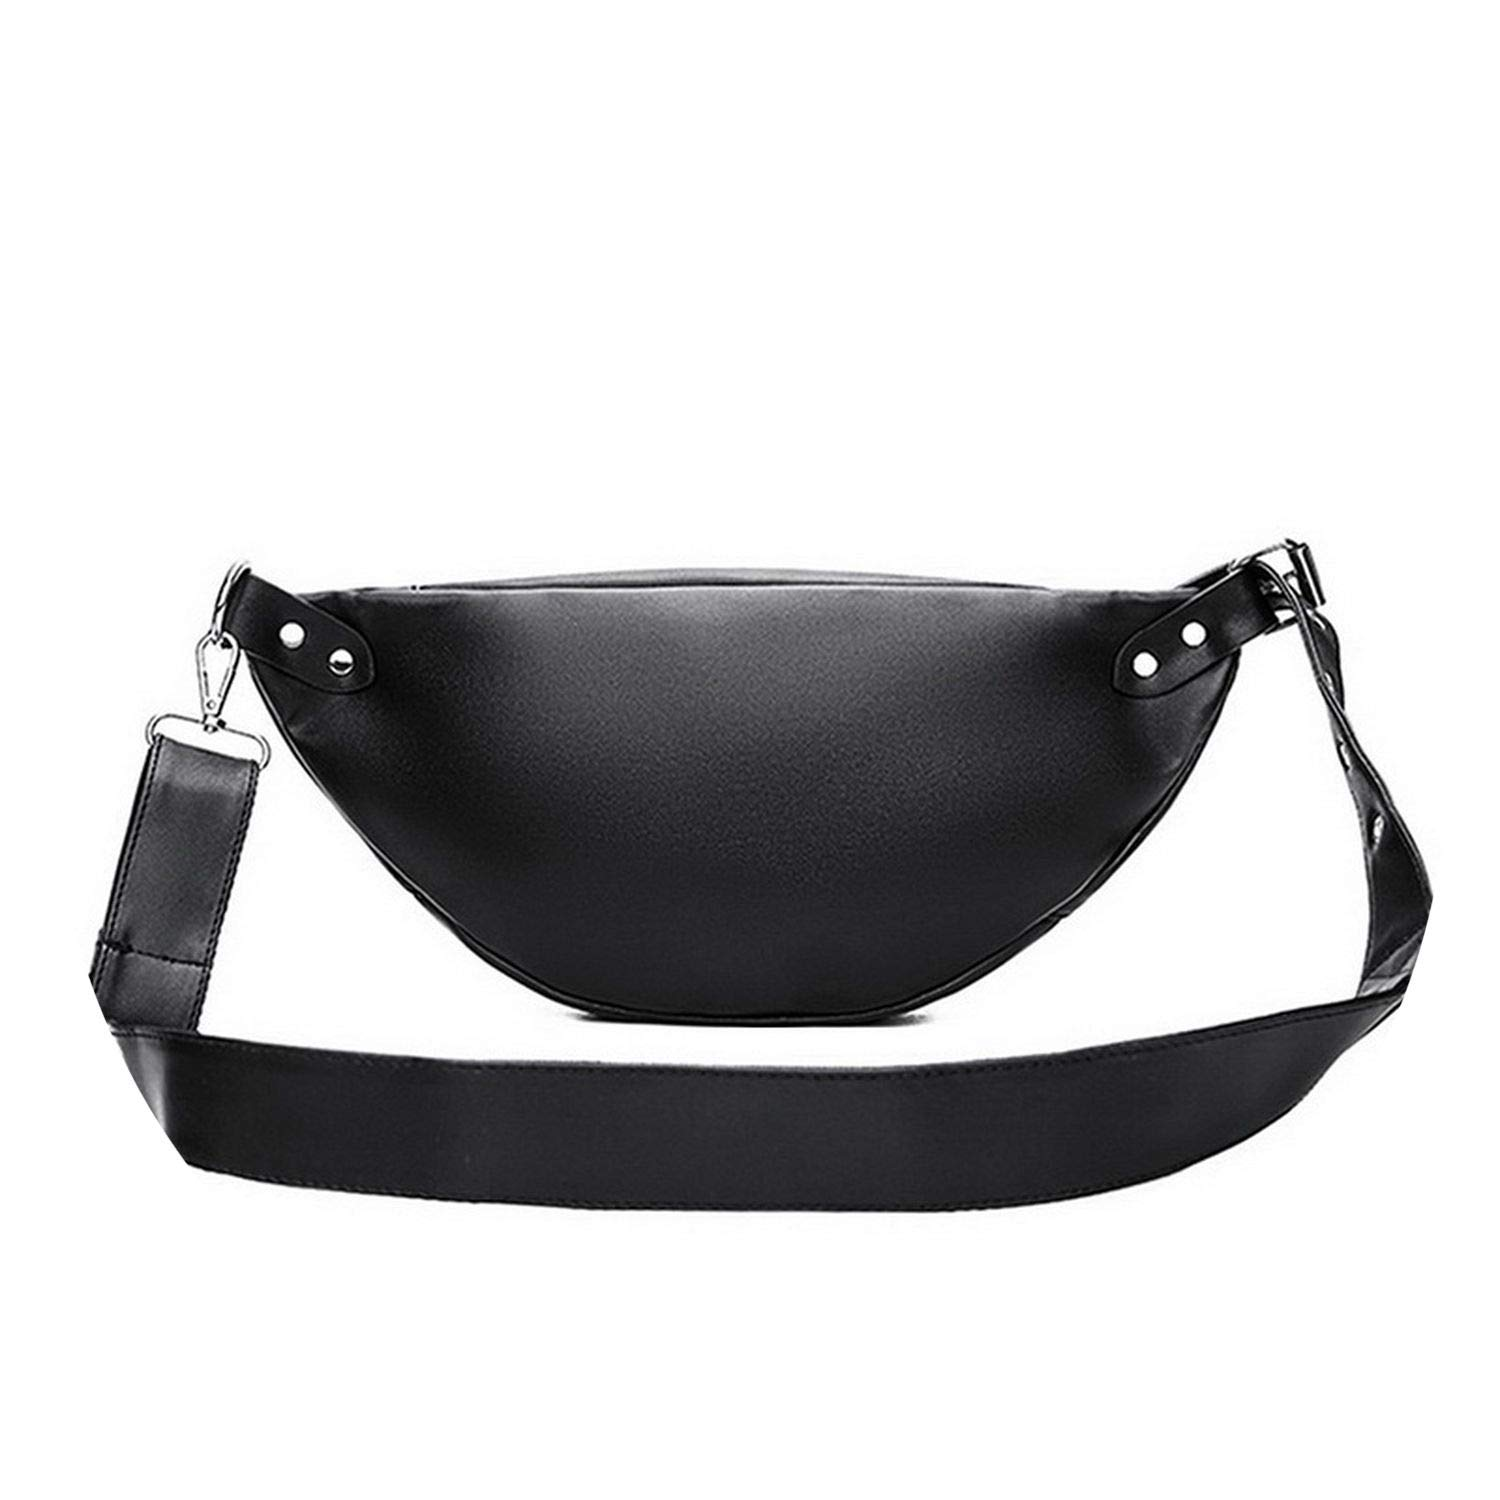 Pu Leather Waist Packs on Women Shoulder Bags Black Design Simple Casual Belt Bags WHDV0195